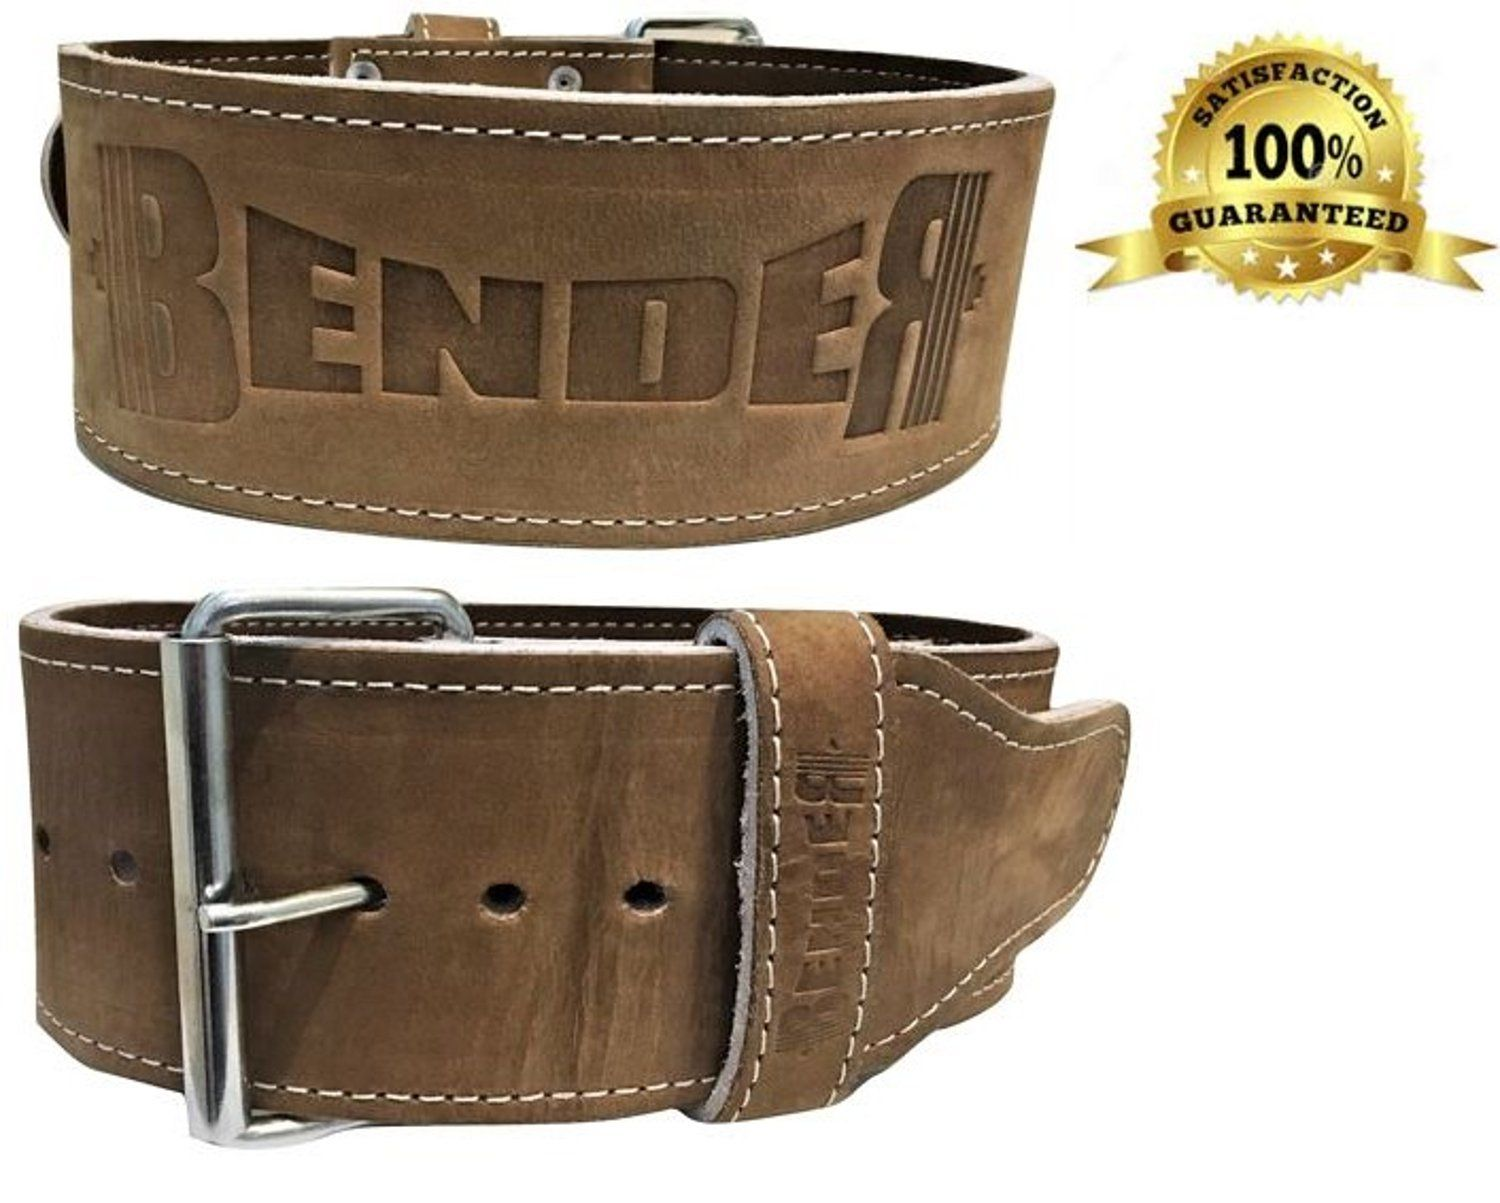 Pin on Weight Belts